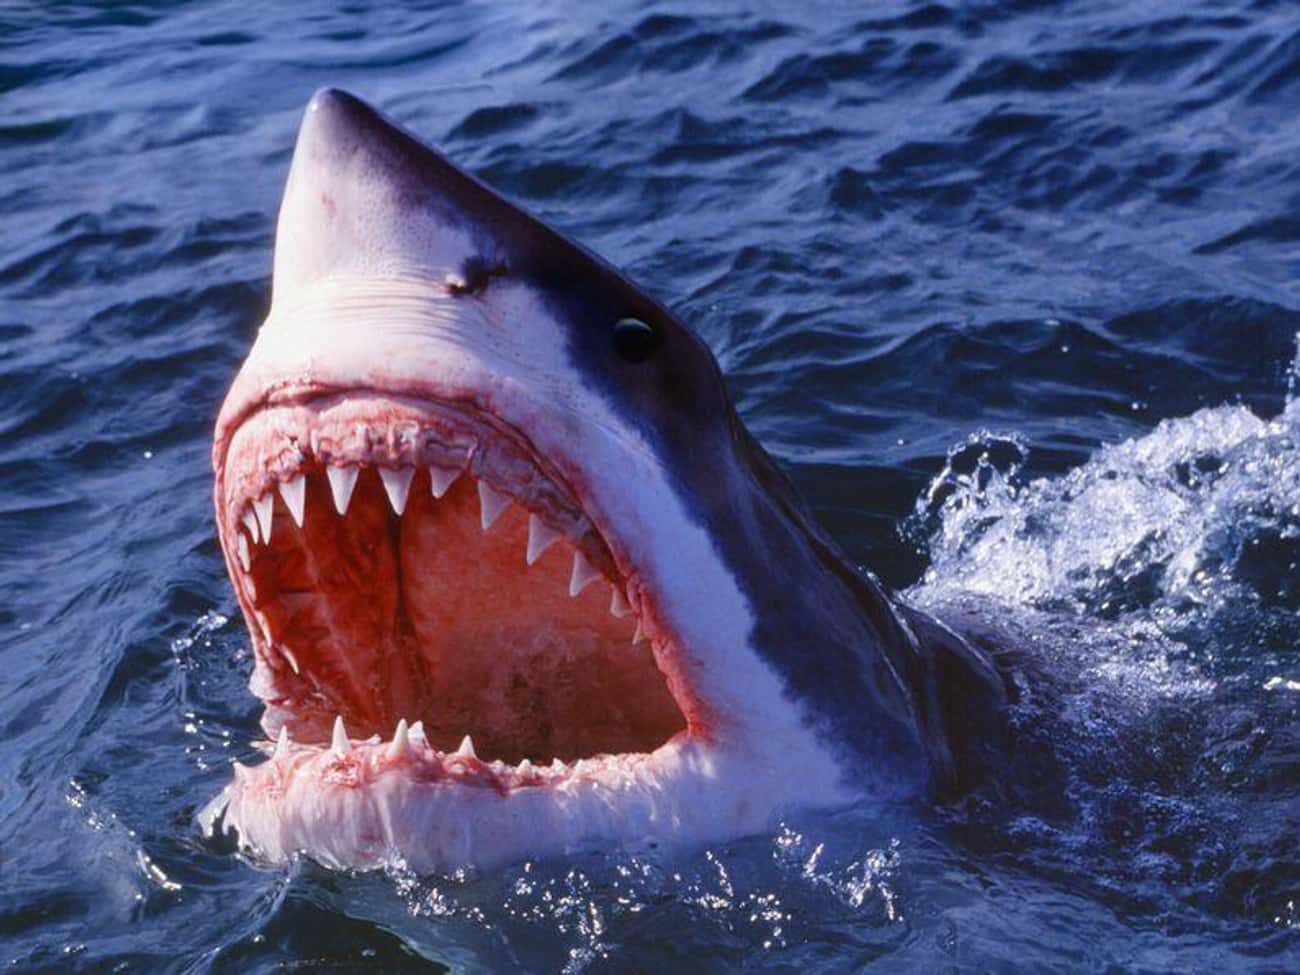 Sharks Smell Blood From Miles  is listed (or ranked) 1 on the list Facts About Animals That You Have Completely Wrong Thanks To Movies And TV